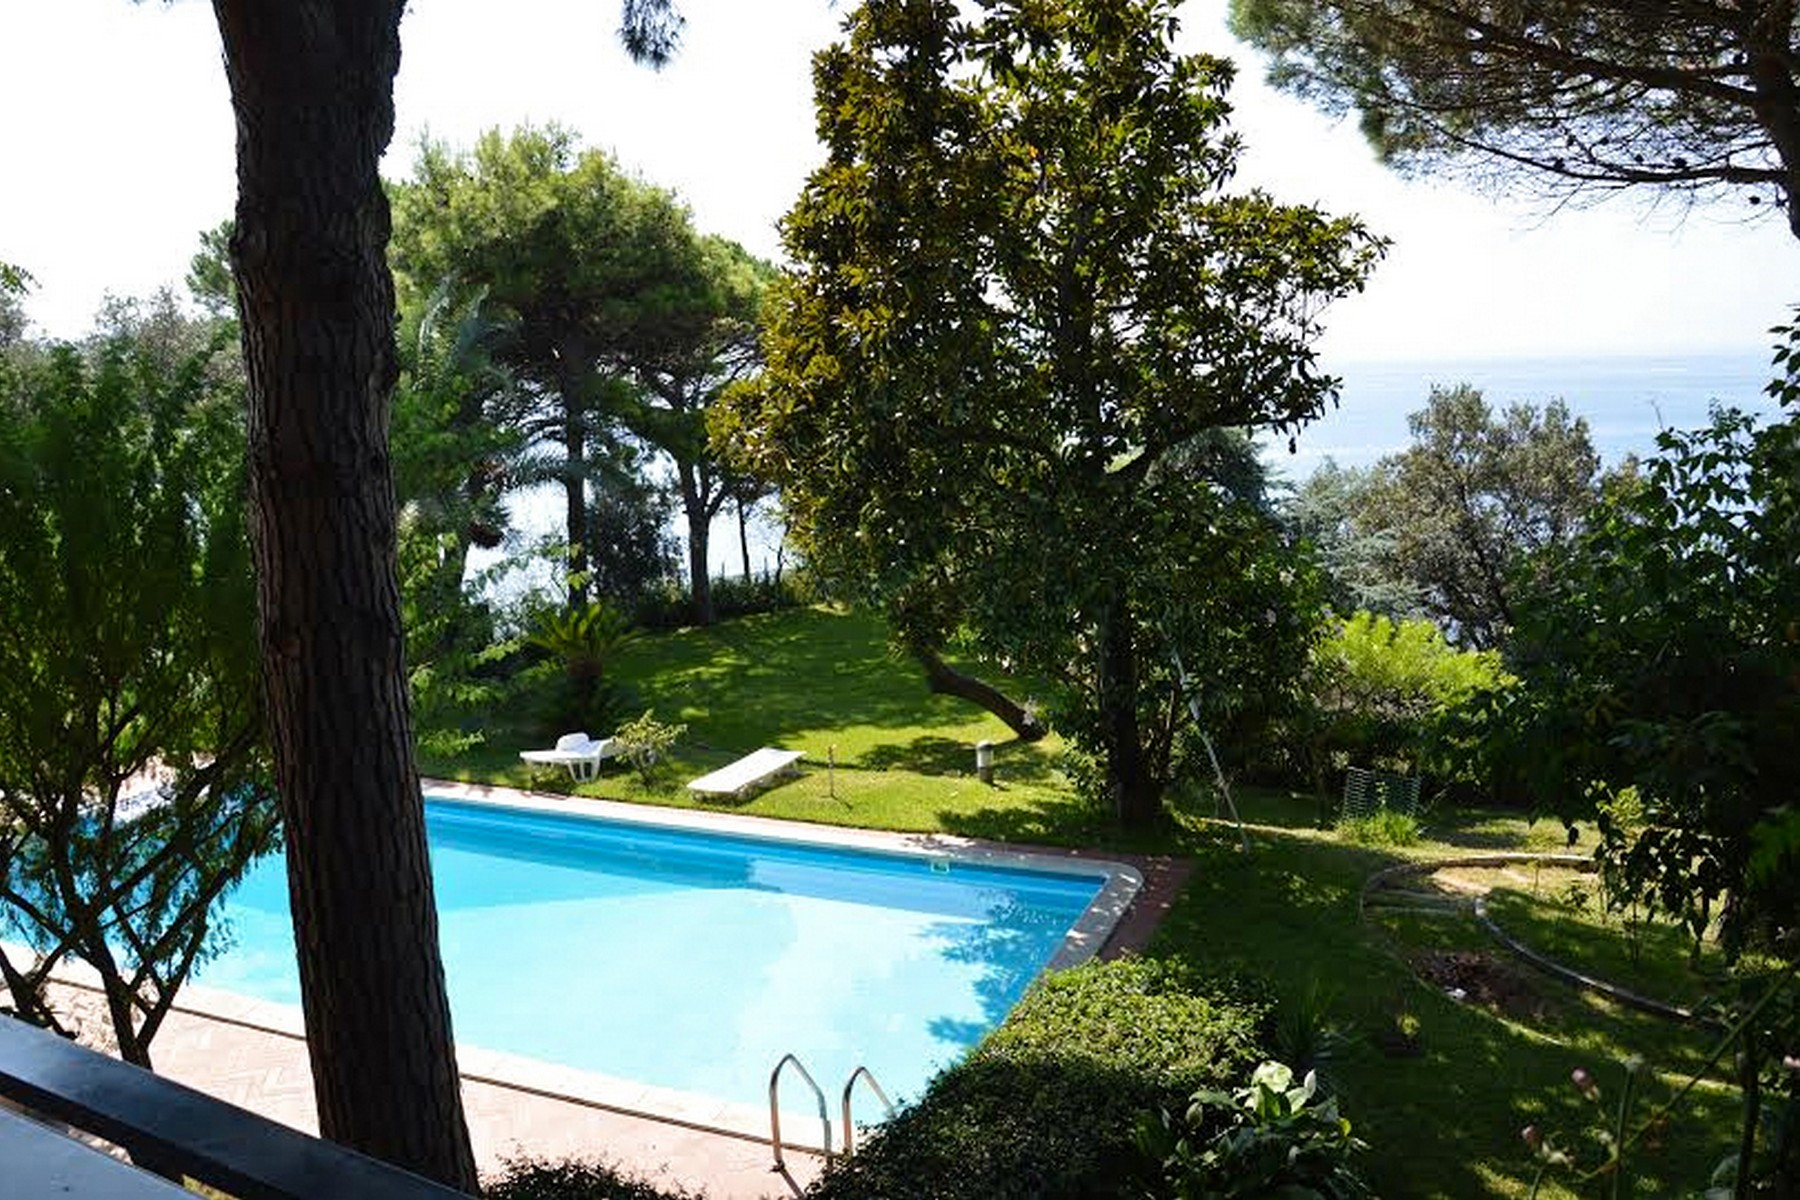 Maison unifamiliale pour l Vente à Charming villa with private pool and garden Pozzuoli, Naples Italie